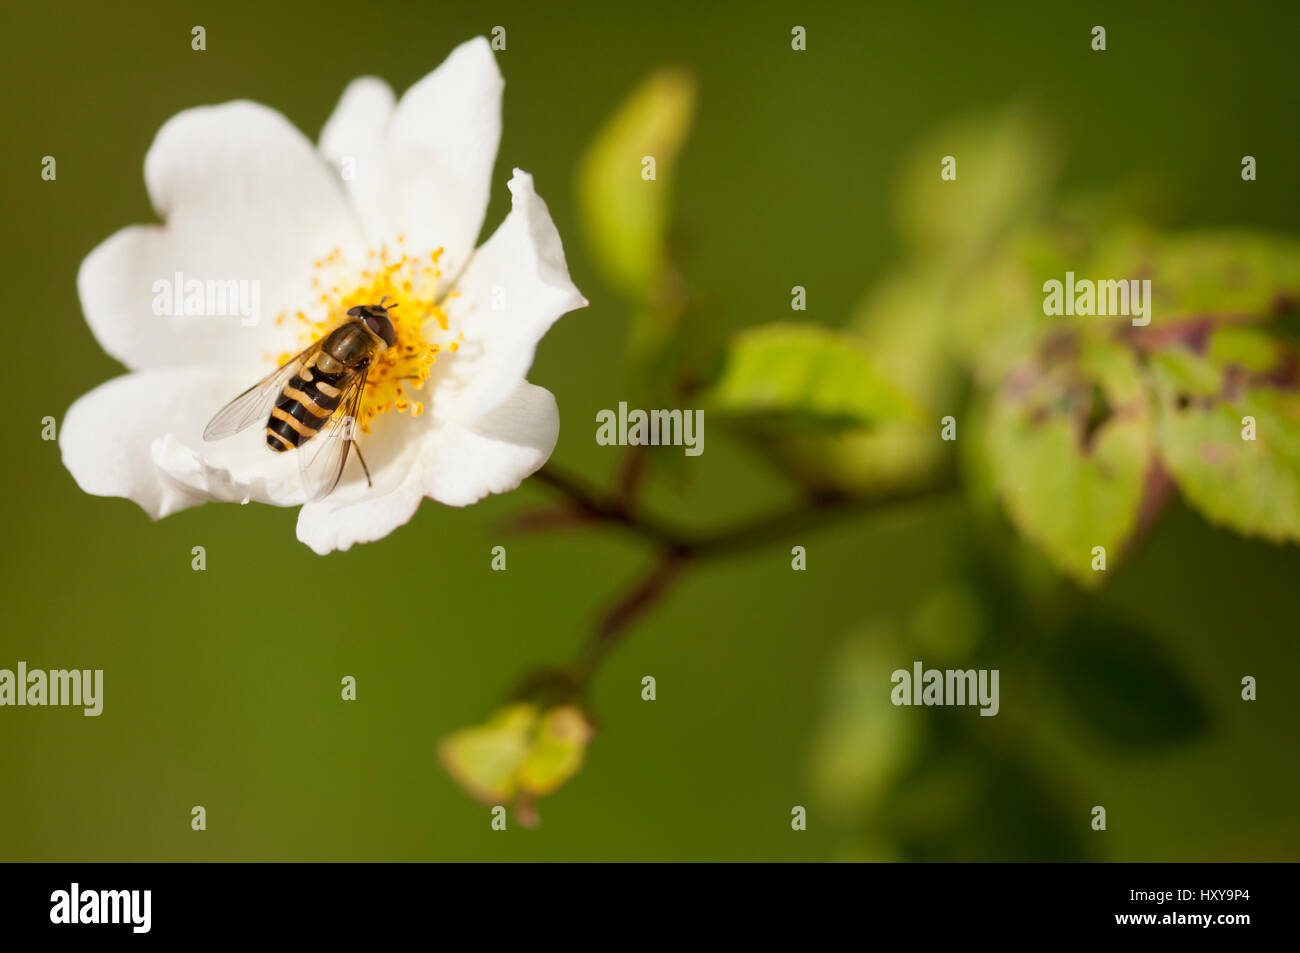 Marmalade hover fly (Episyrphus balteatus) feeding on nectar from field rose (Rosa arvensis). Denmark Farm, Lampeter, - Stock Image